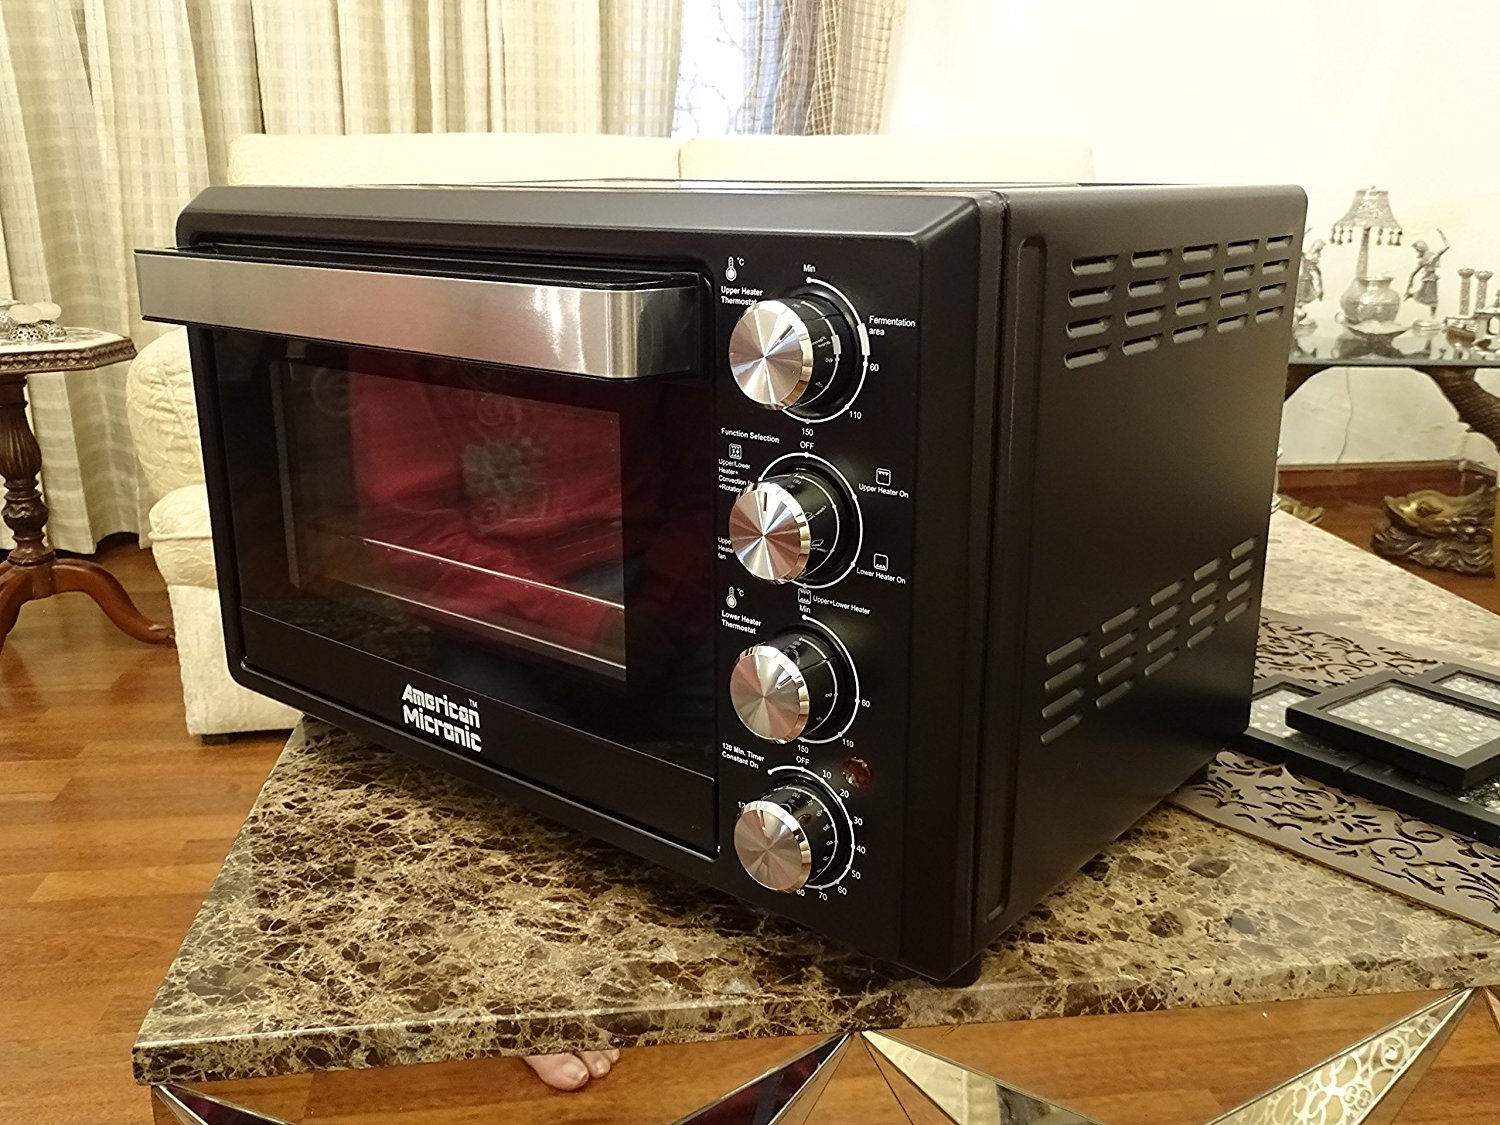 6 Best Oven Toaster Griller Otg You Can Buy Online In